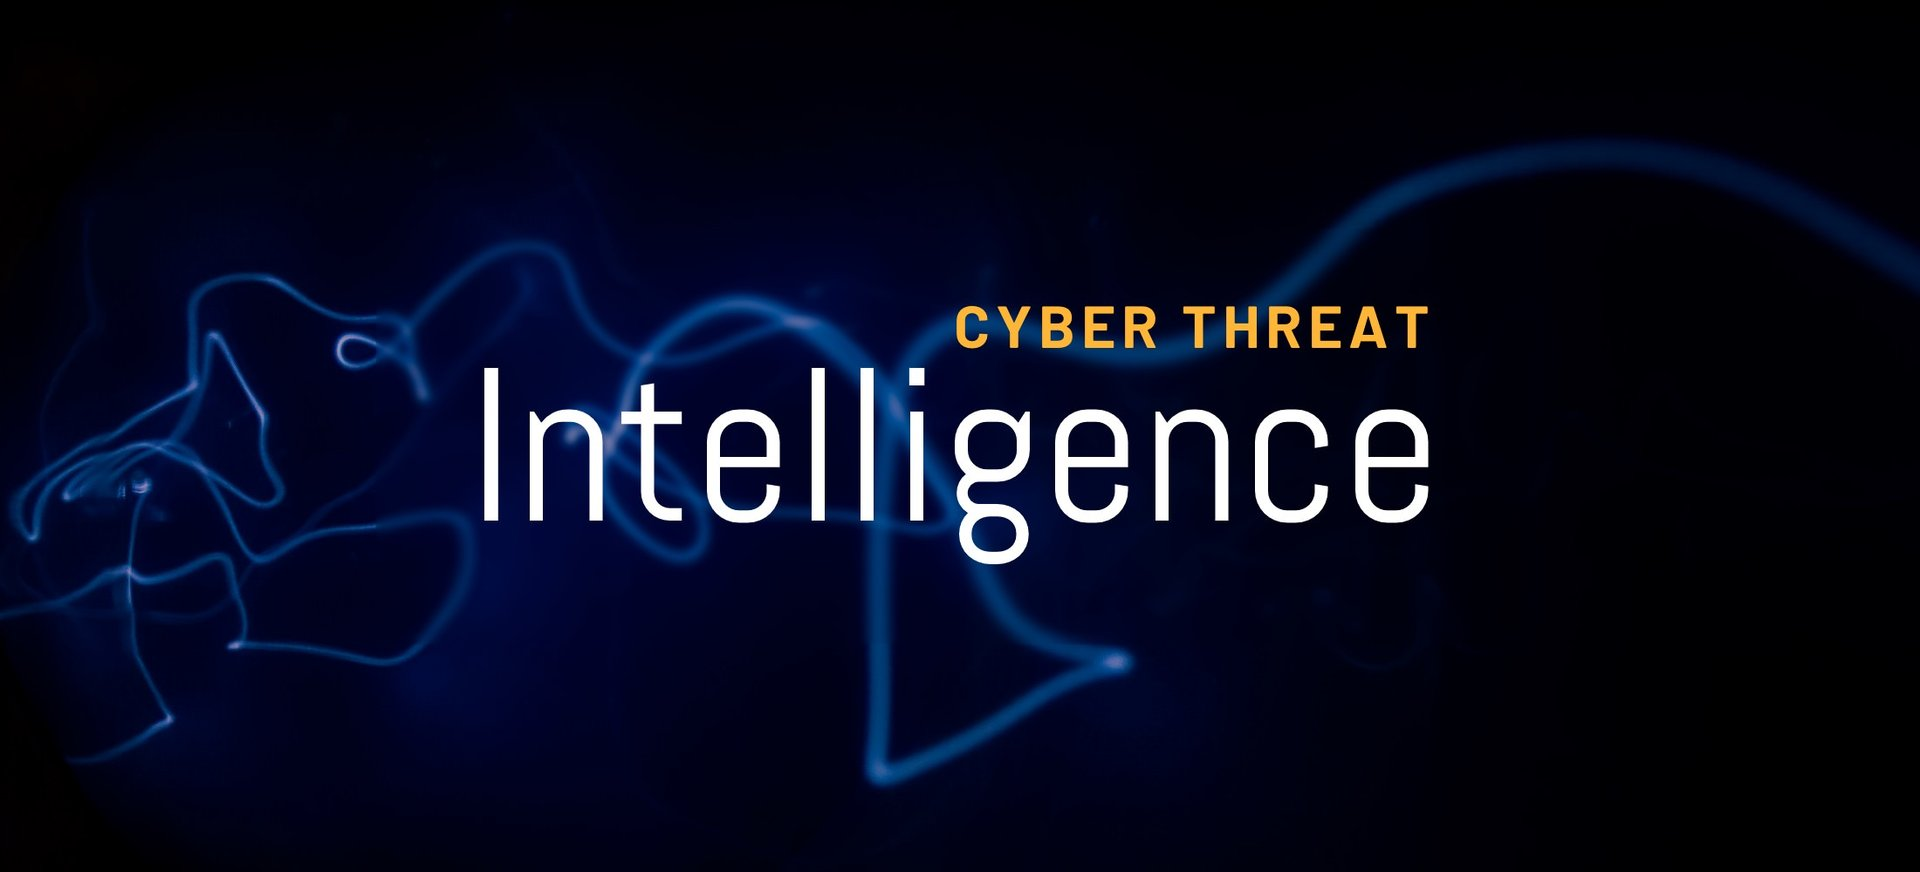 Cyber Threat Intelligence: What is it? Why is it so important?